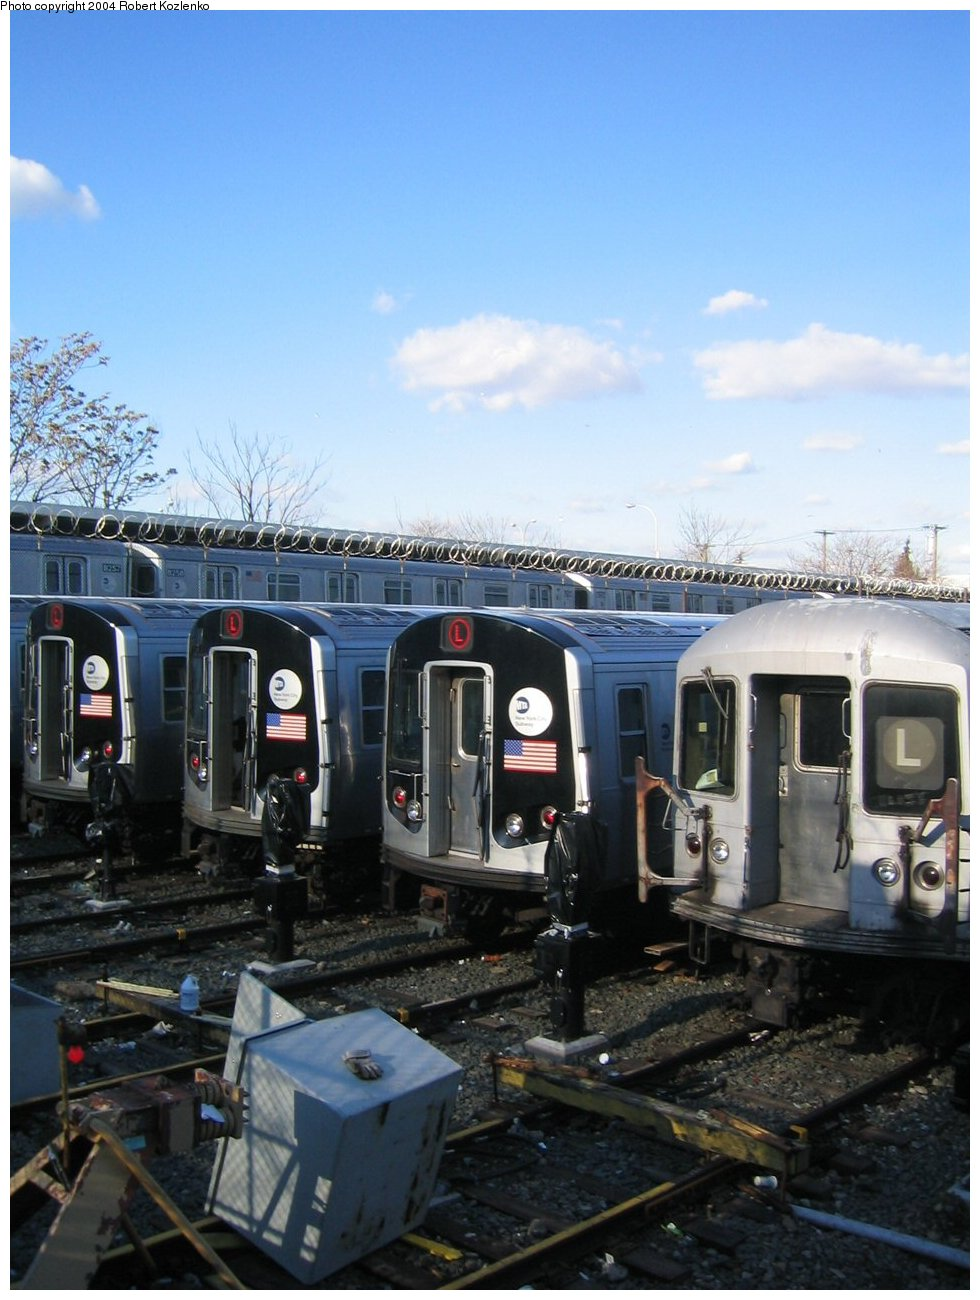 (215k, 980x1300)<br><b>Country:</b> United States<br><b>City:</b> New York<br><b>System:</b> New York City Transit<br><b>Location:</b> Rockaway Parkway (Canarsie) Yard<br><b>Car:</b> R-143 (Kawasaki, 2001-2002)  <br><b>Photo by:</b> Robert Kozlenko<br><b>Date:</b> 11/26/2004<br><b>Viewed (this week/total):</b> 0 / 4288